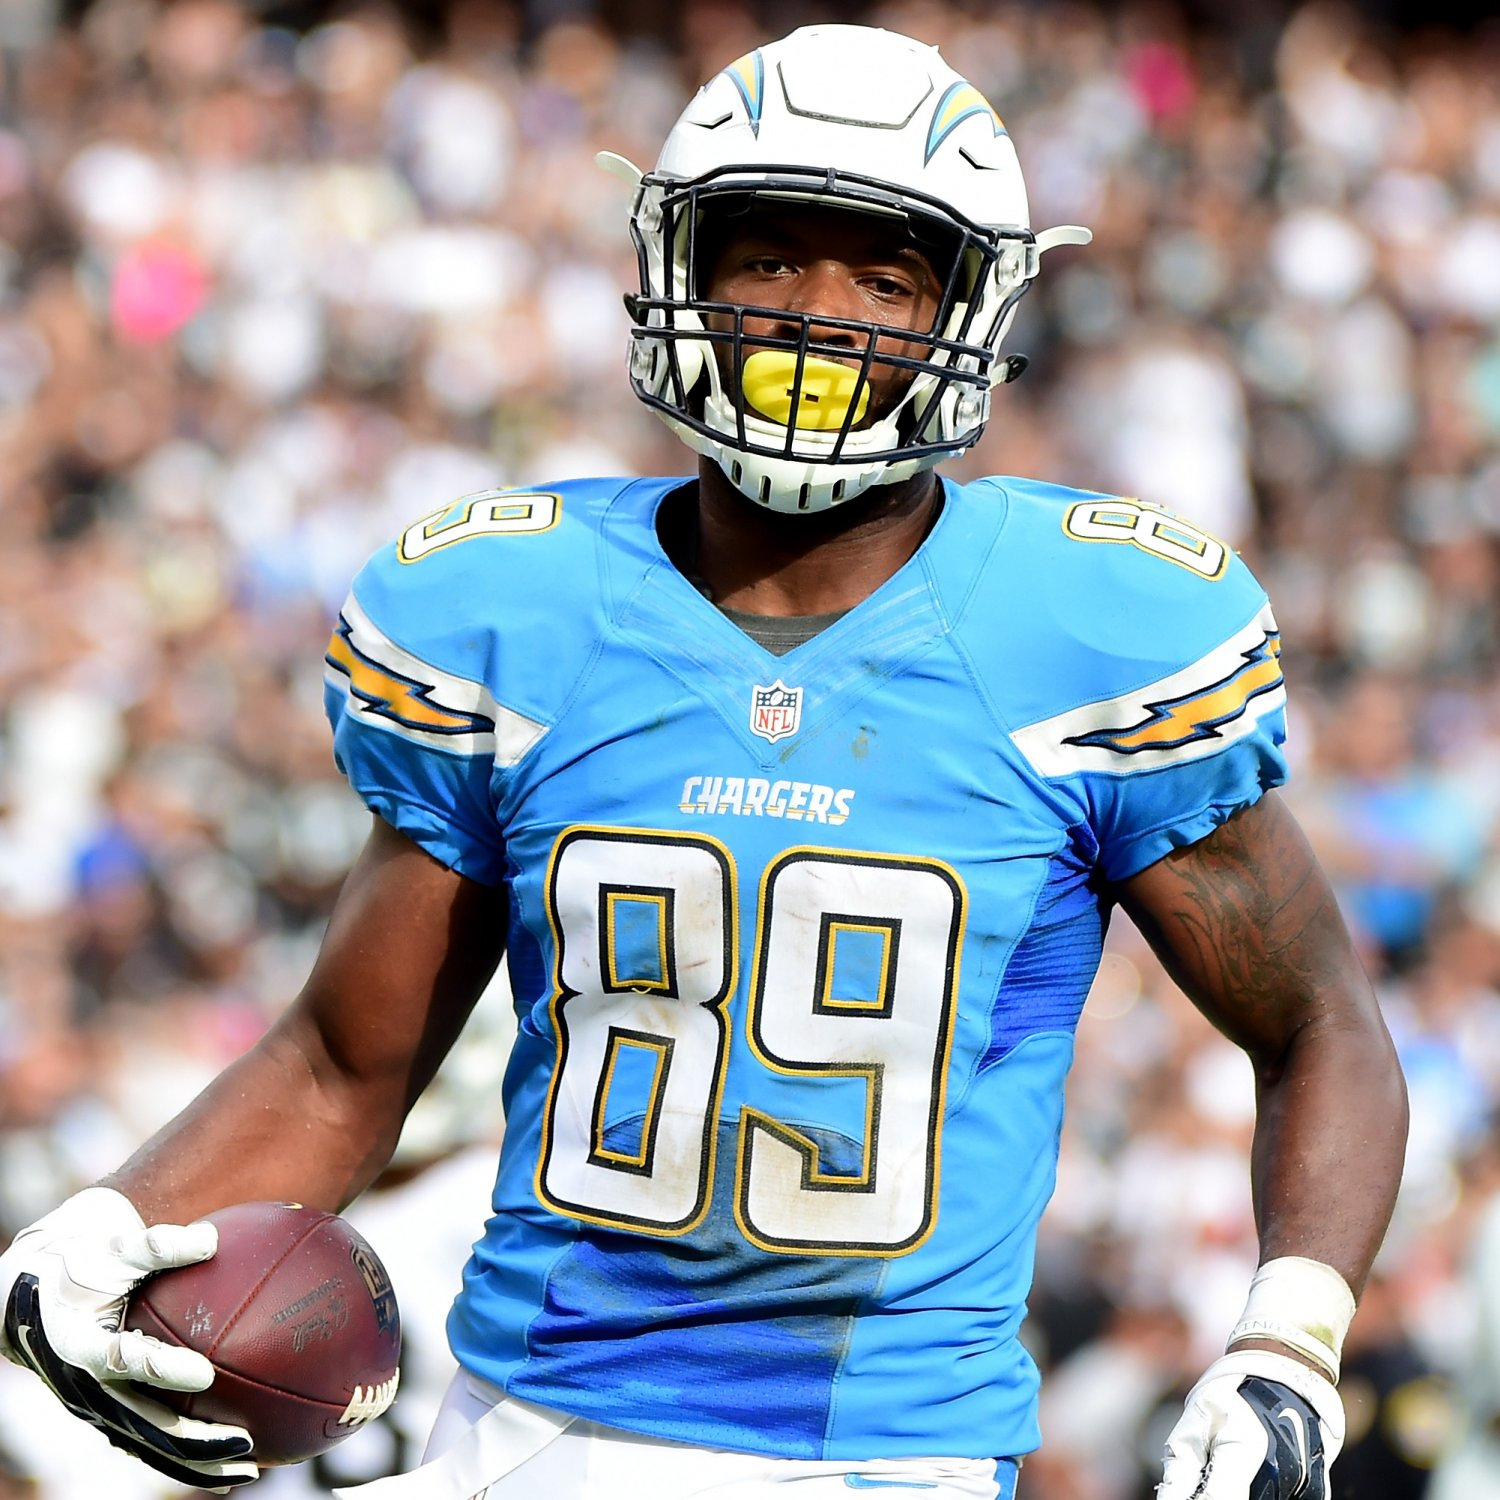 San Diego Chargers Contracts: Ladarius Green To Steelers: Latest Contract Details And